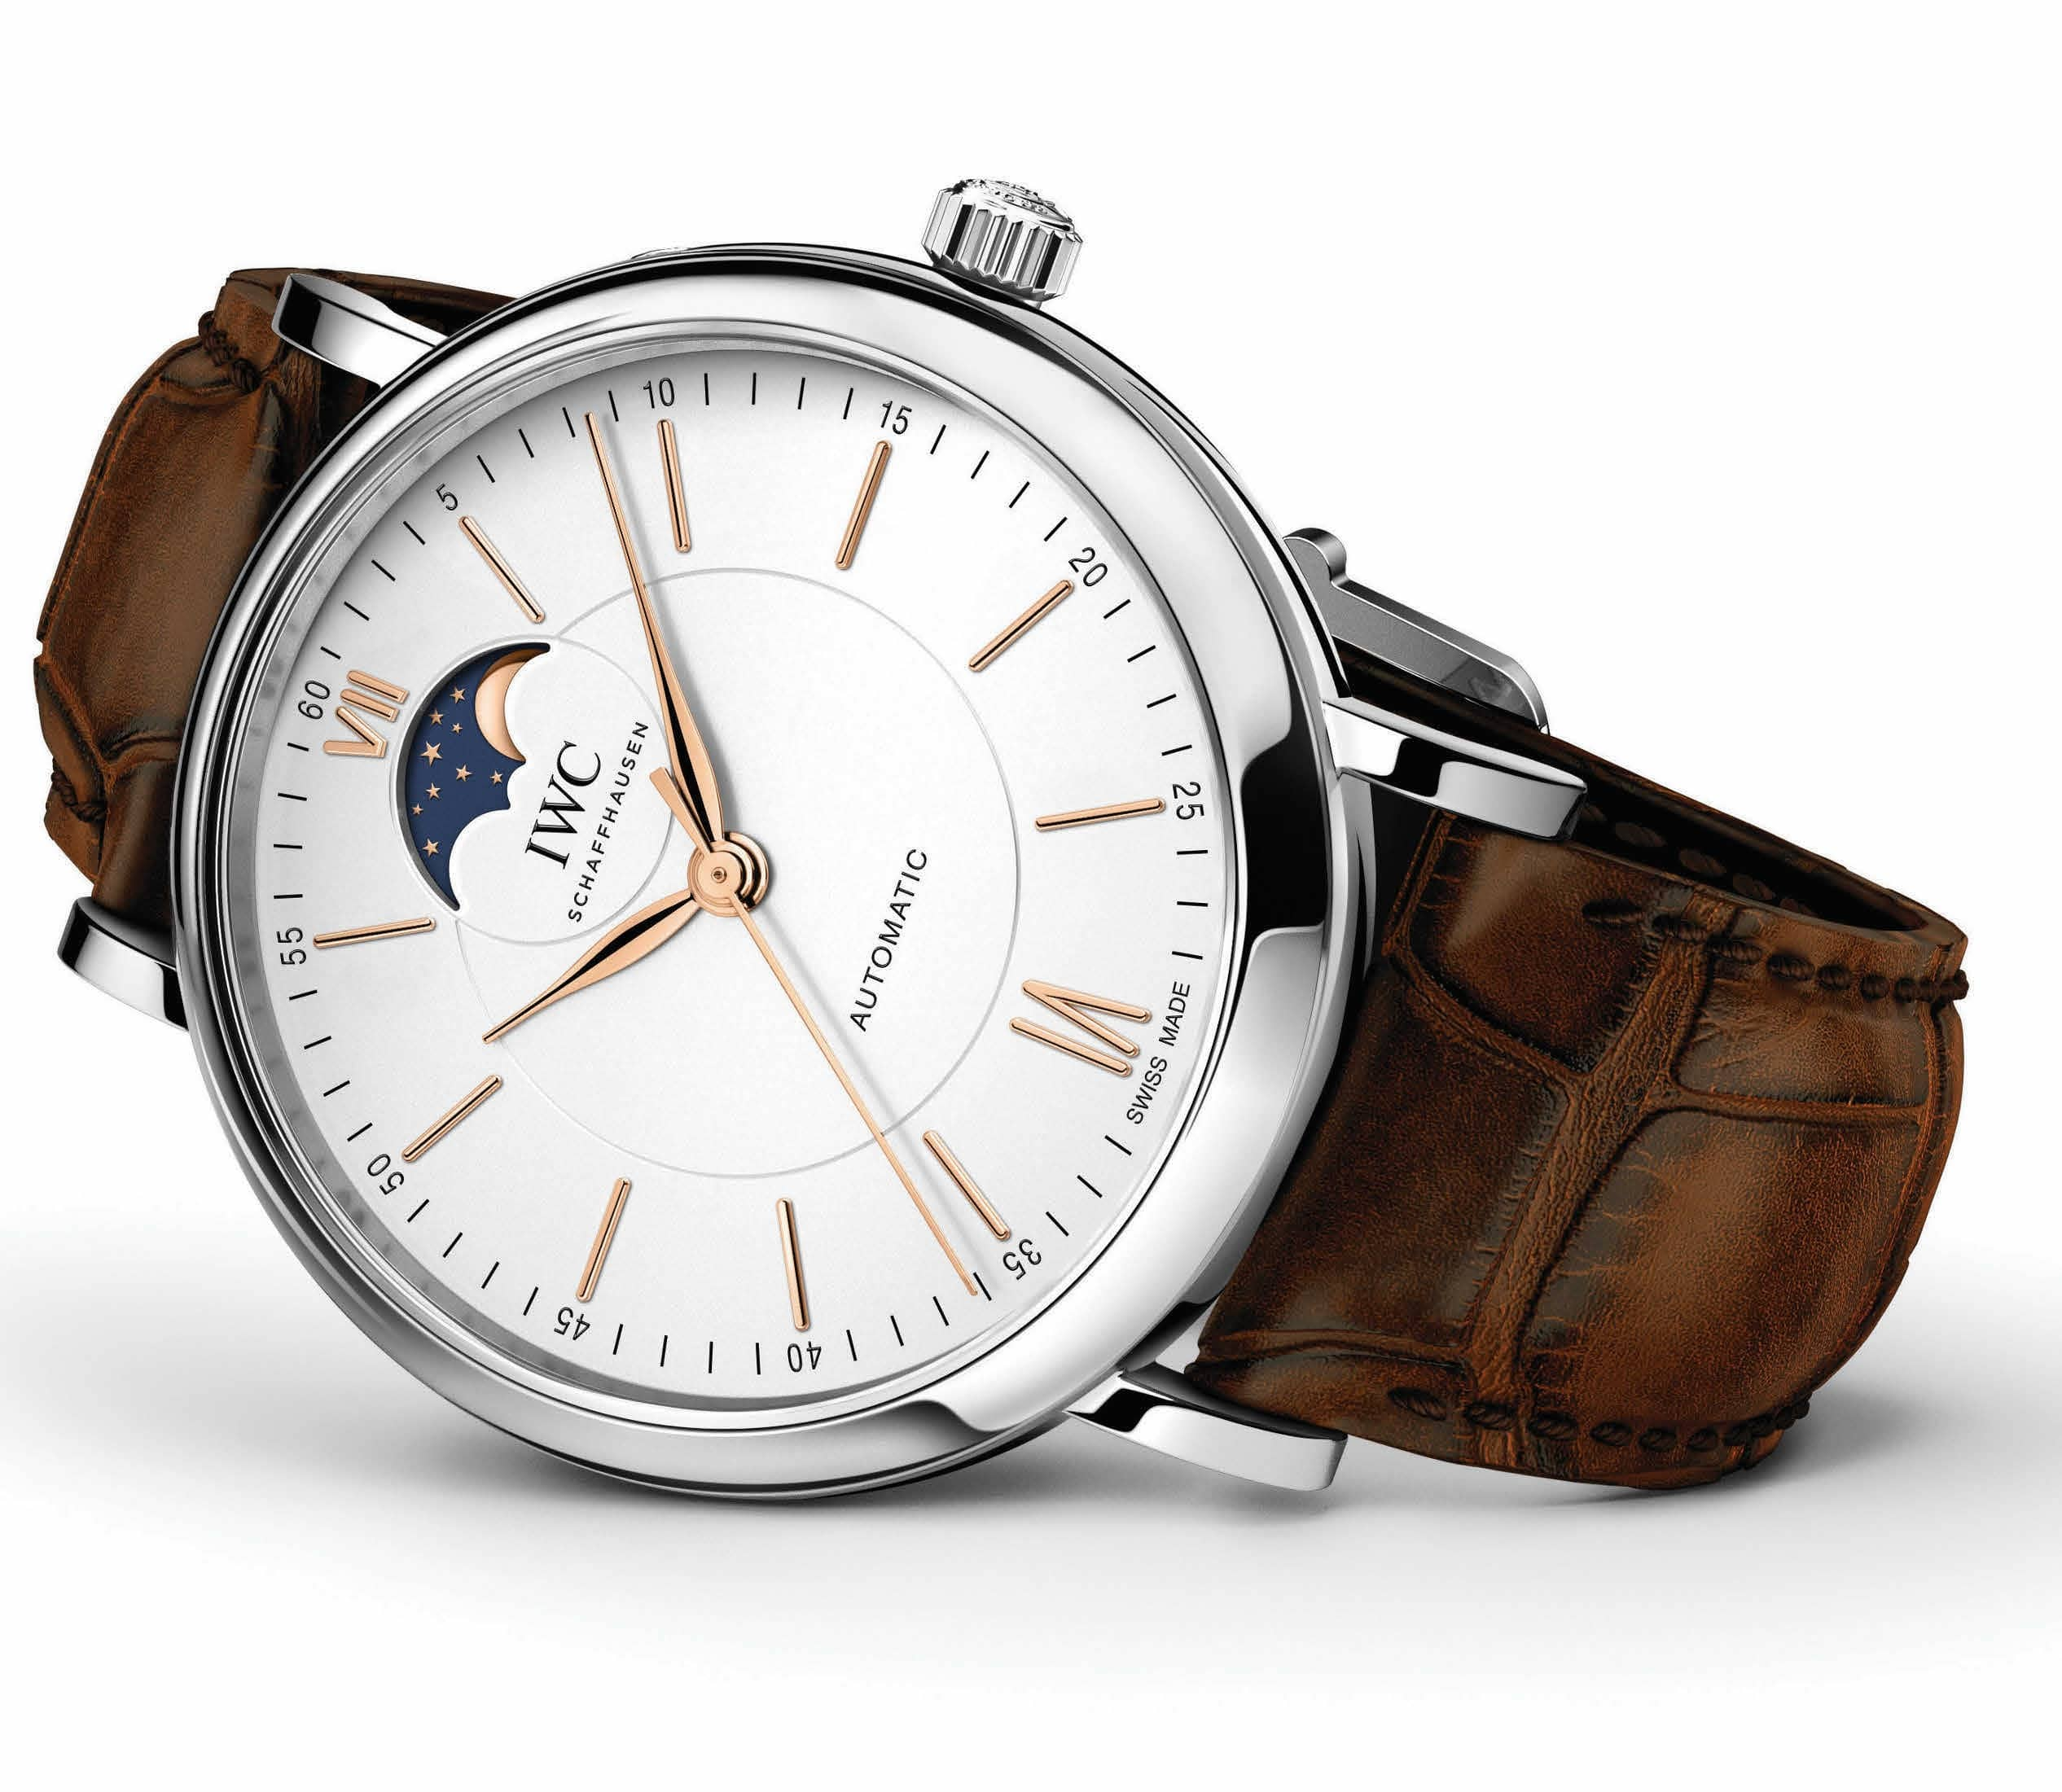 TOP 6 - MOONPHASE WATCHES